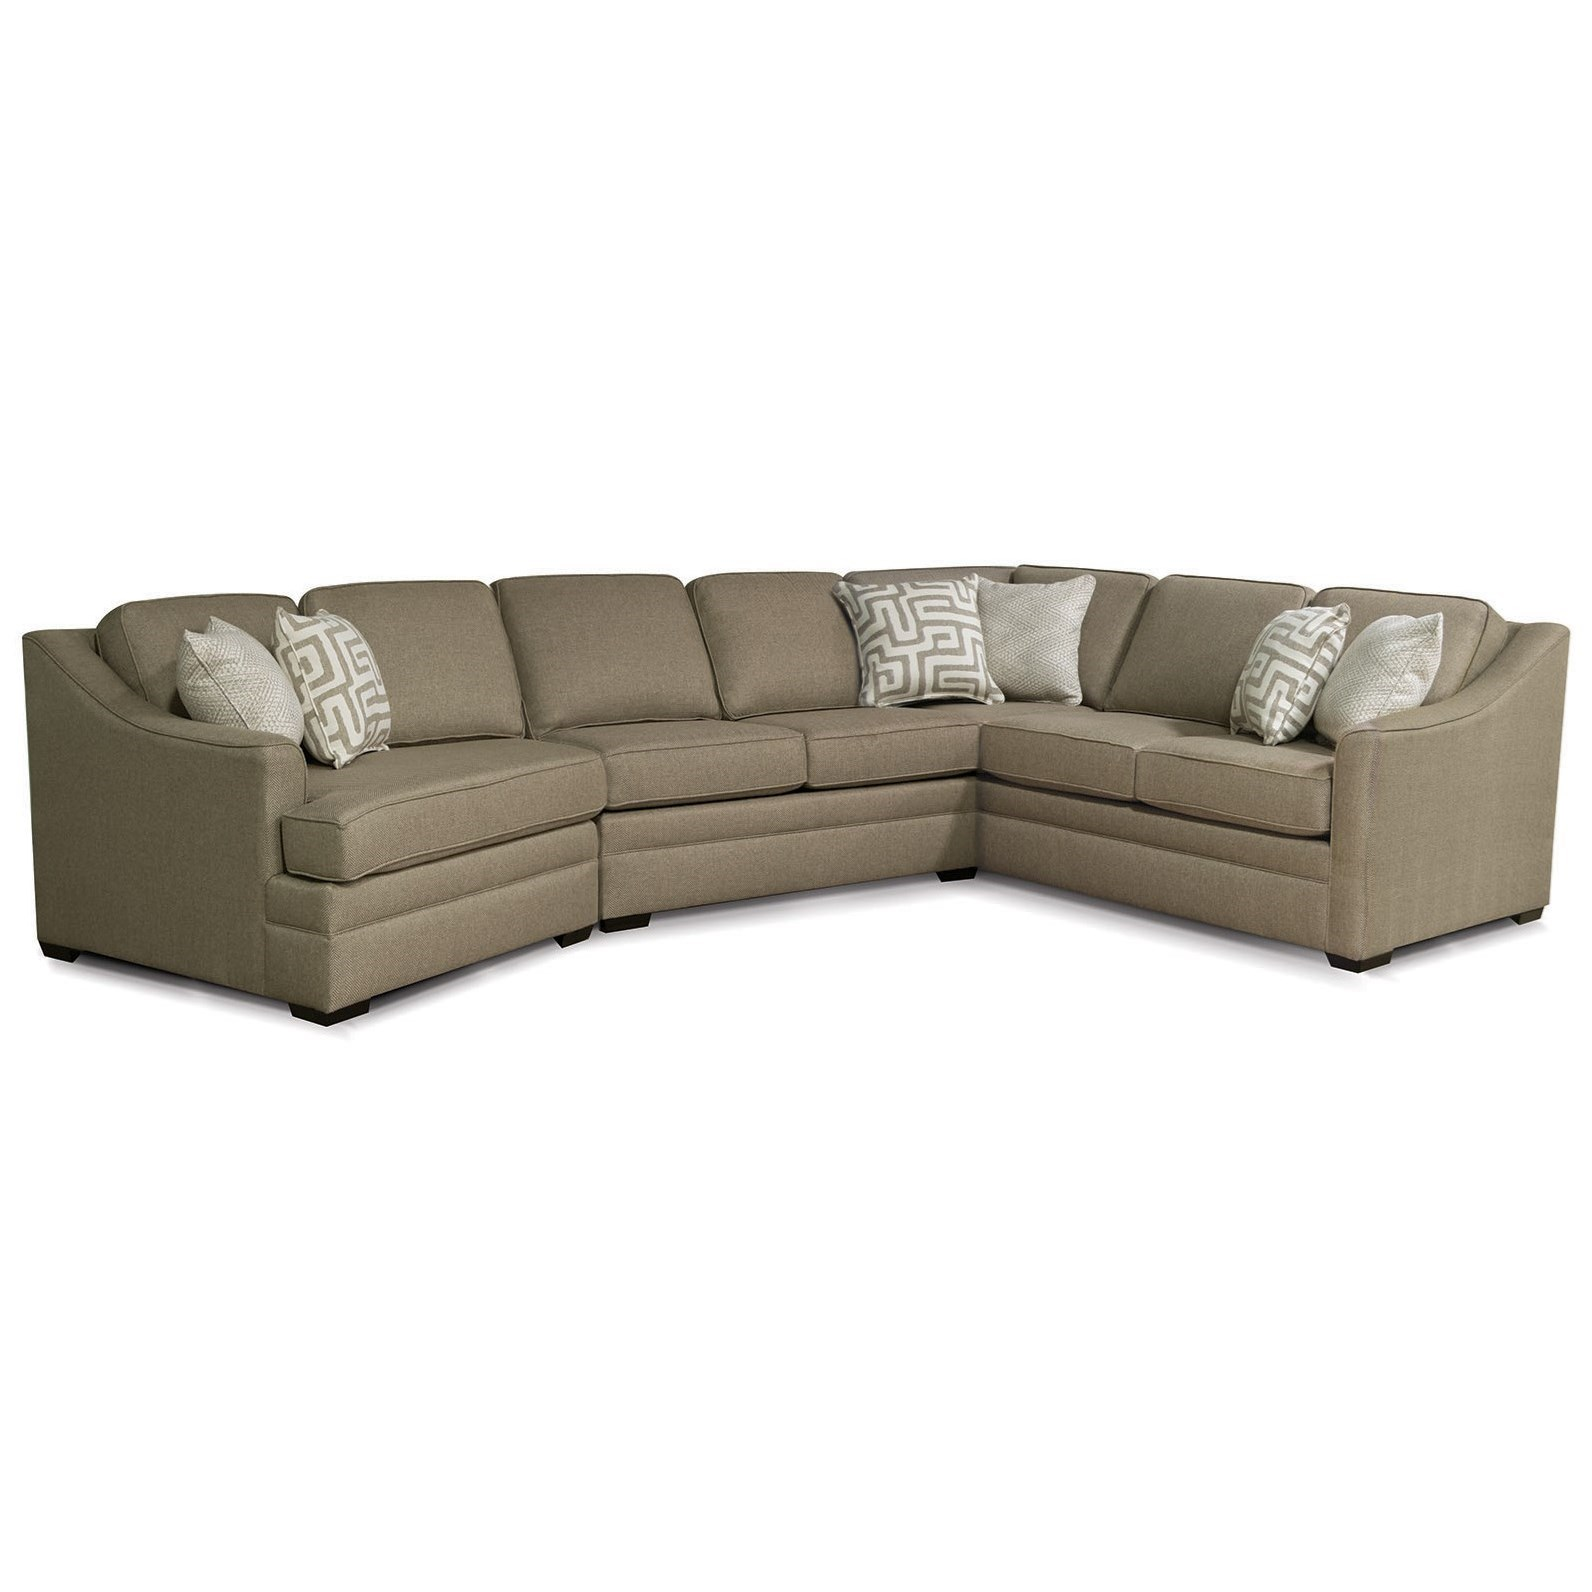 England Thomas Sectional Sofa with Cuddler | Miller Home ...